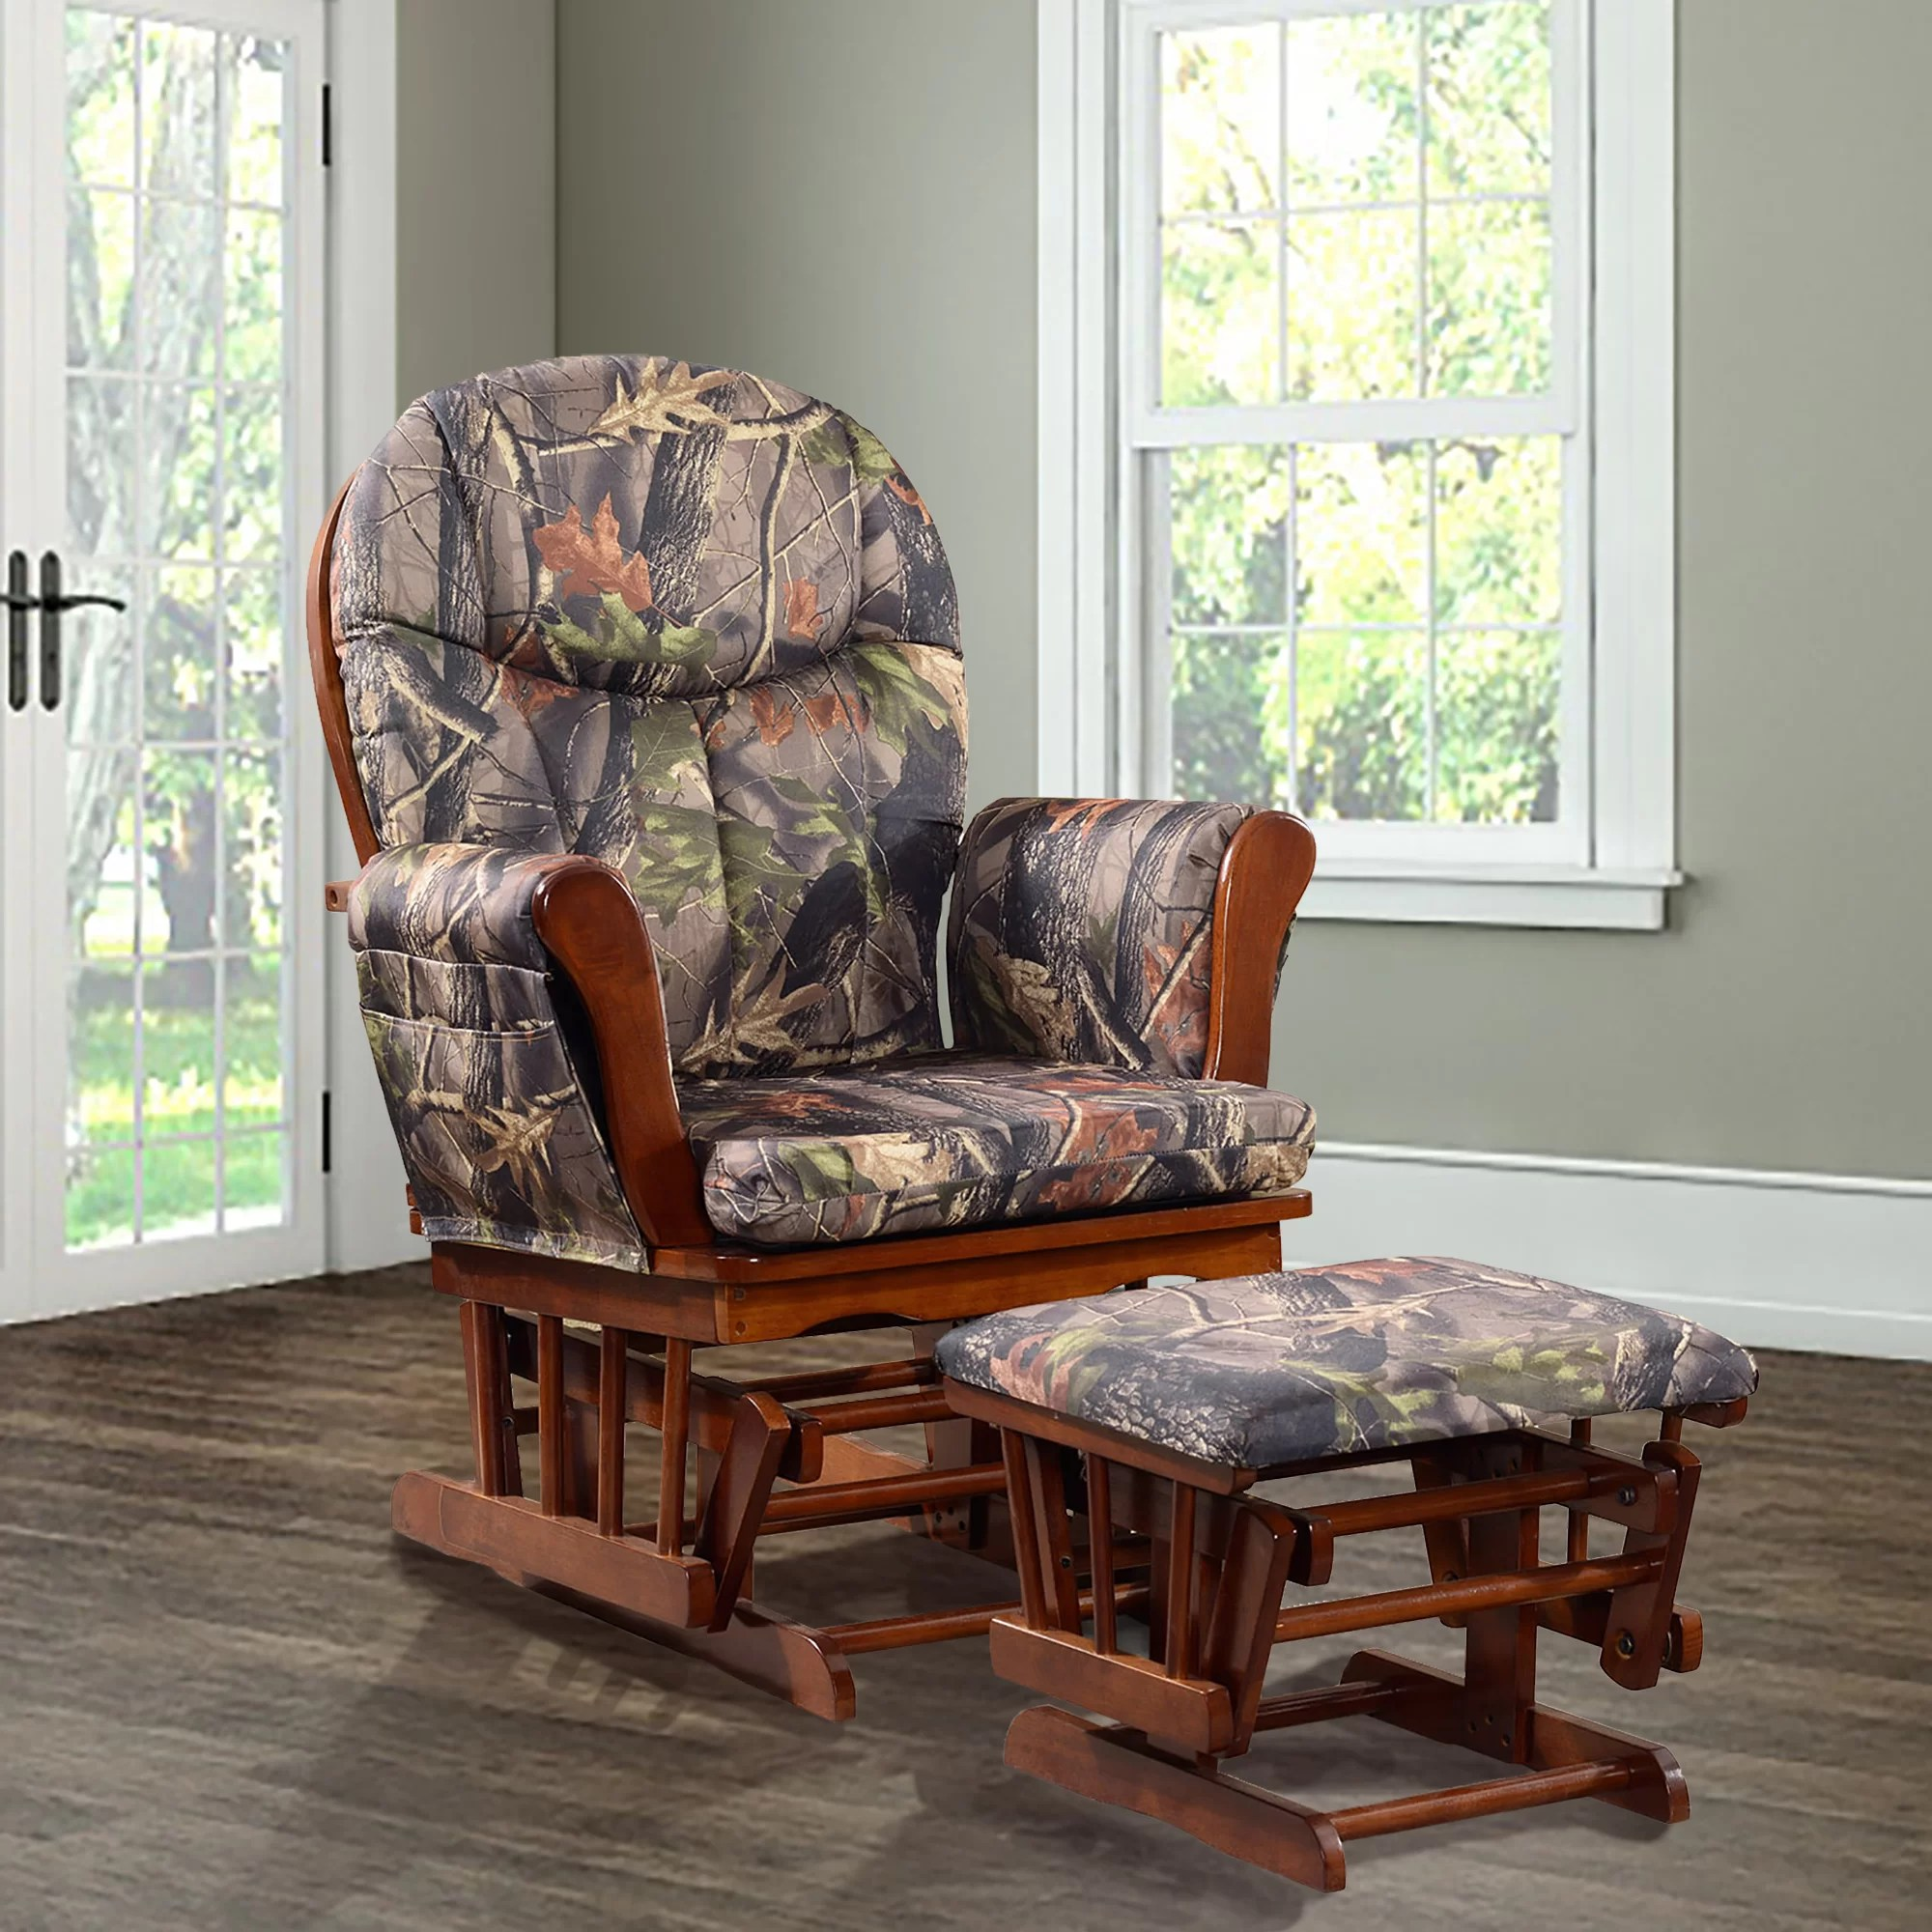 rocking chair christmas covers for sale in pretoria artiva usa home deluxe camouflage glider and ottoman